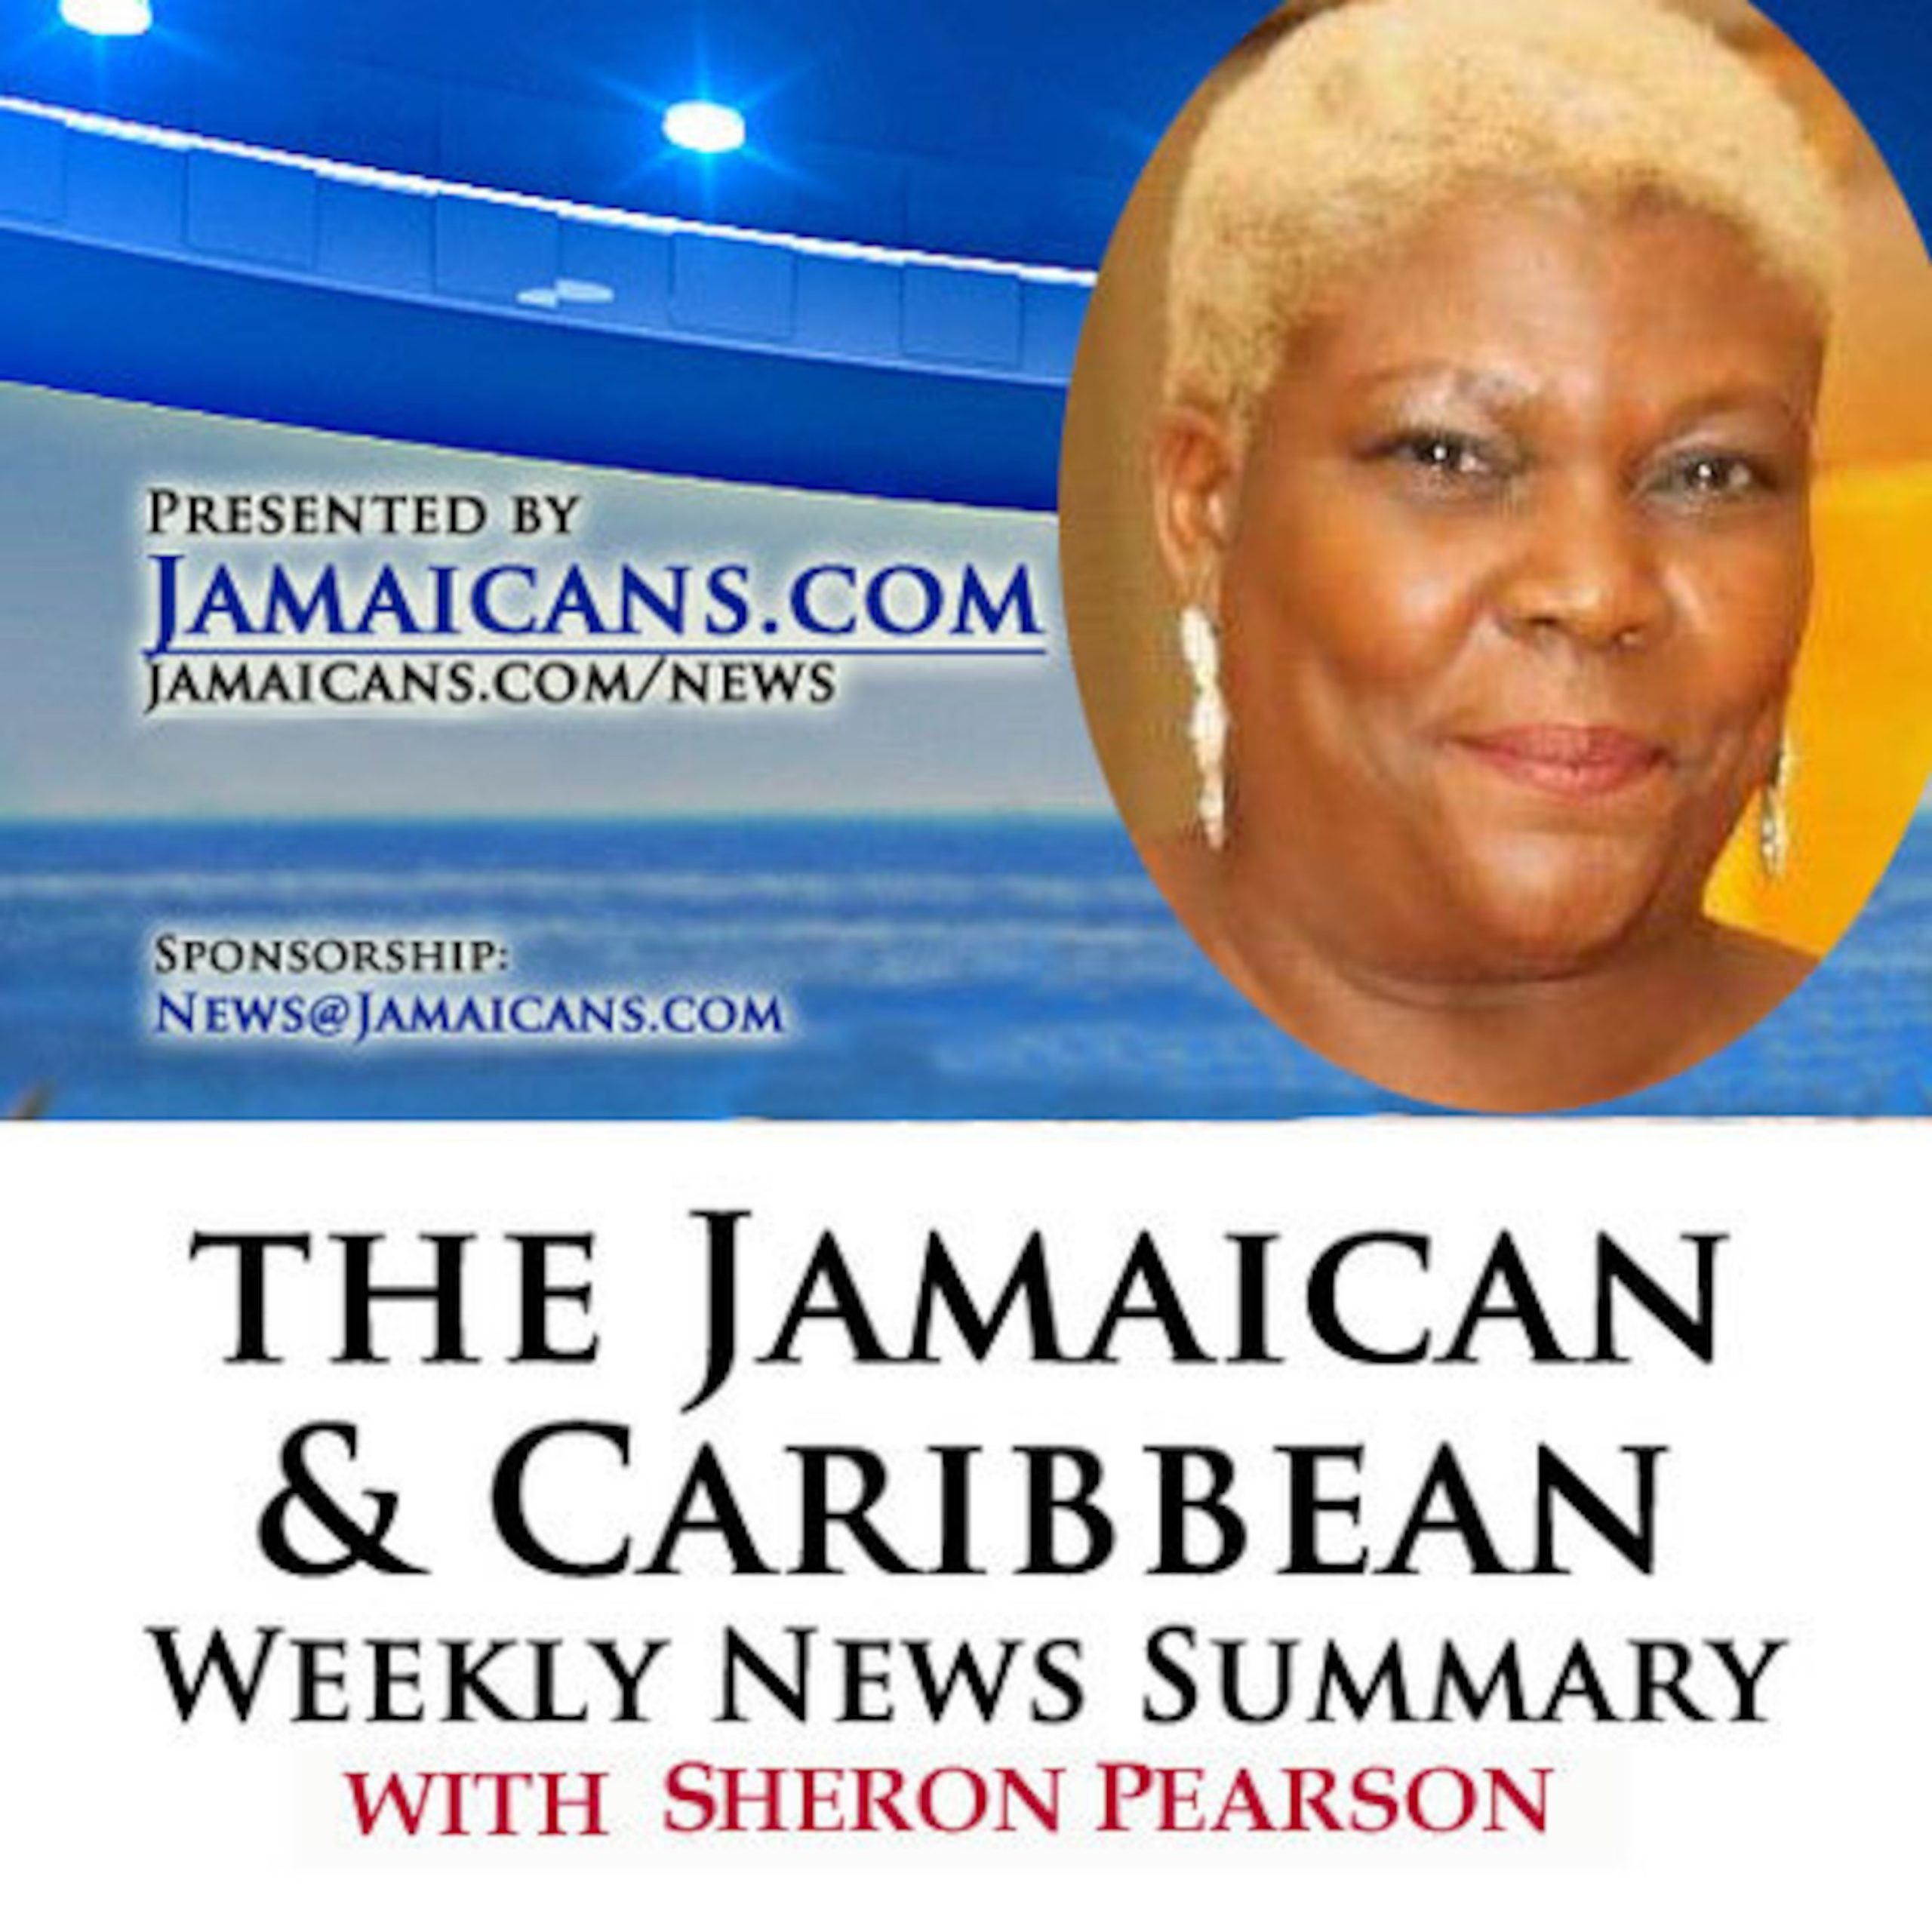 Podcast of The Jamaica & Caribbean Weekly News Summary for the week ending August 16 2019